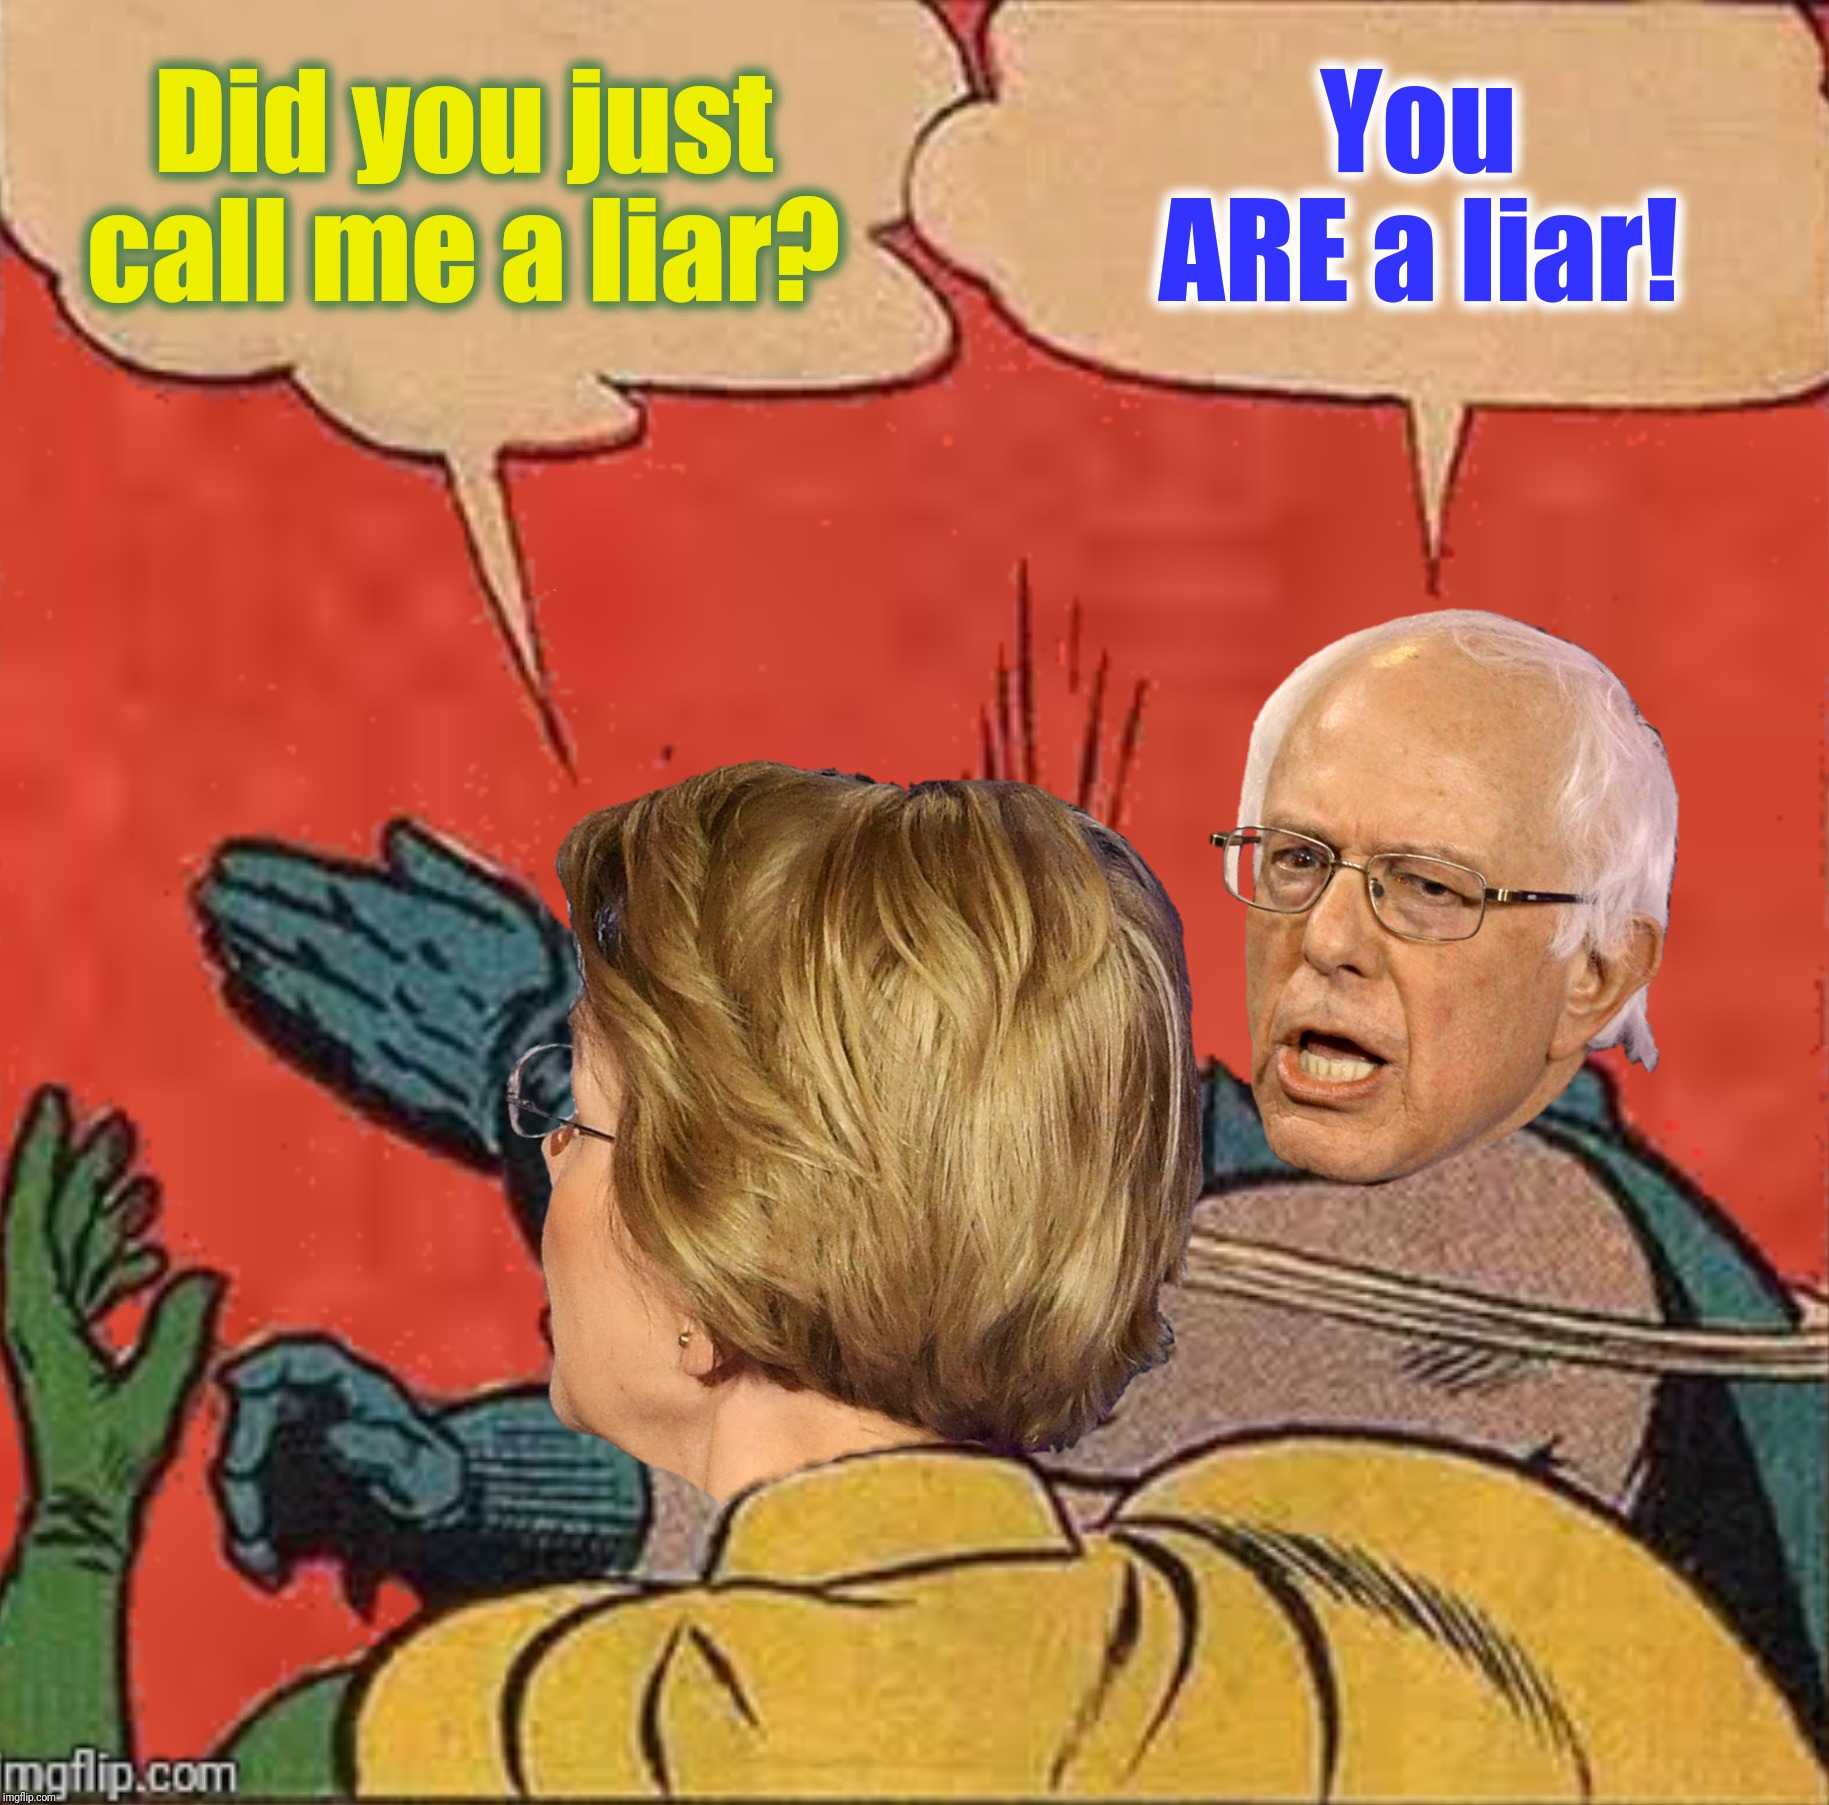 #5_Step_Justice_Slide #Strive_4_Jive_2025GivemHellKathy.com | Did you just call me a liar? You ARE a liar! | image tagged in bad photoshop sunday,batman slapping robin,bernie sanders,elizabeth warren | made w/ Imgflip meme maker